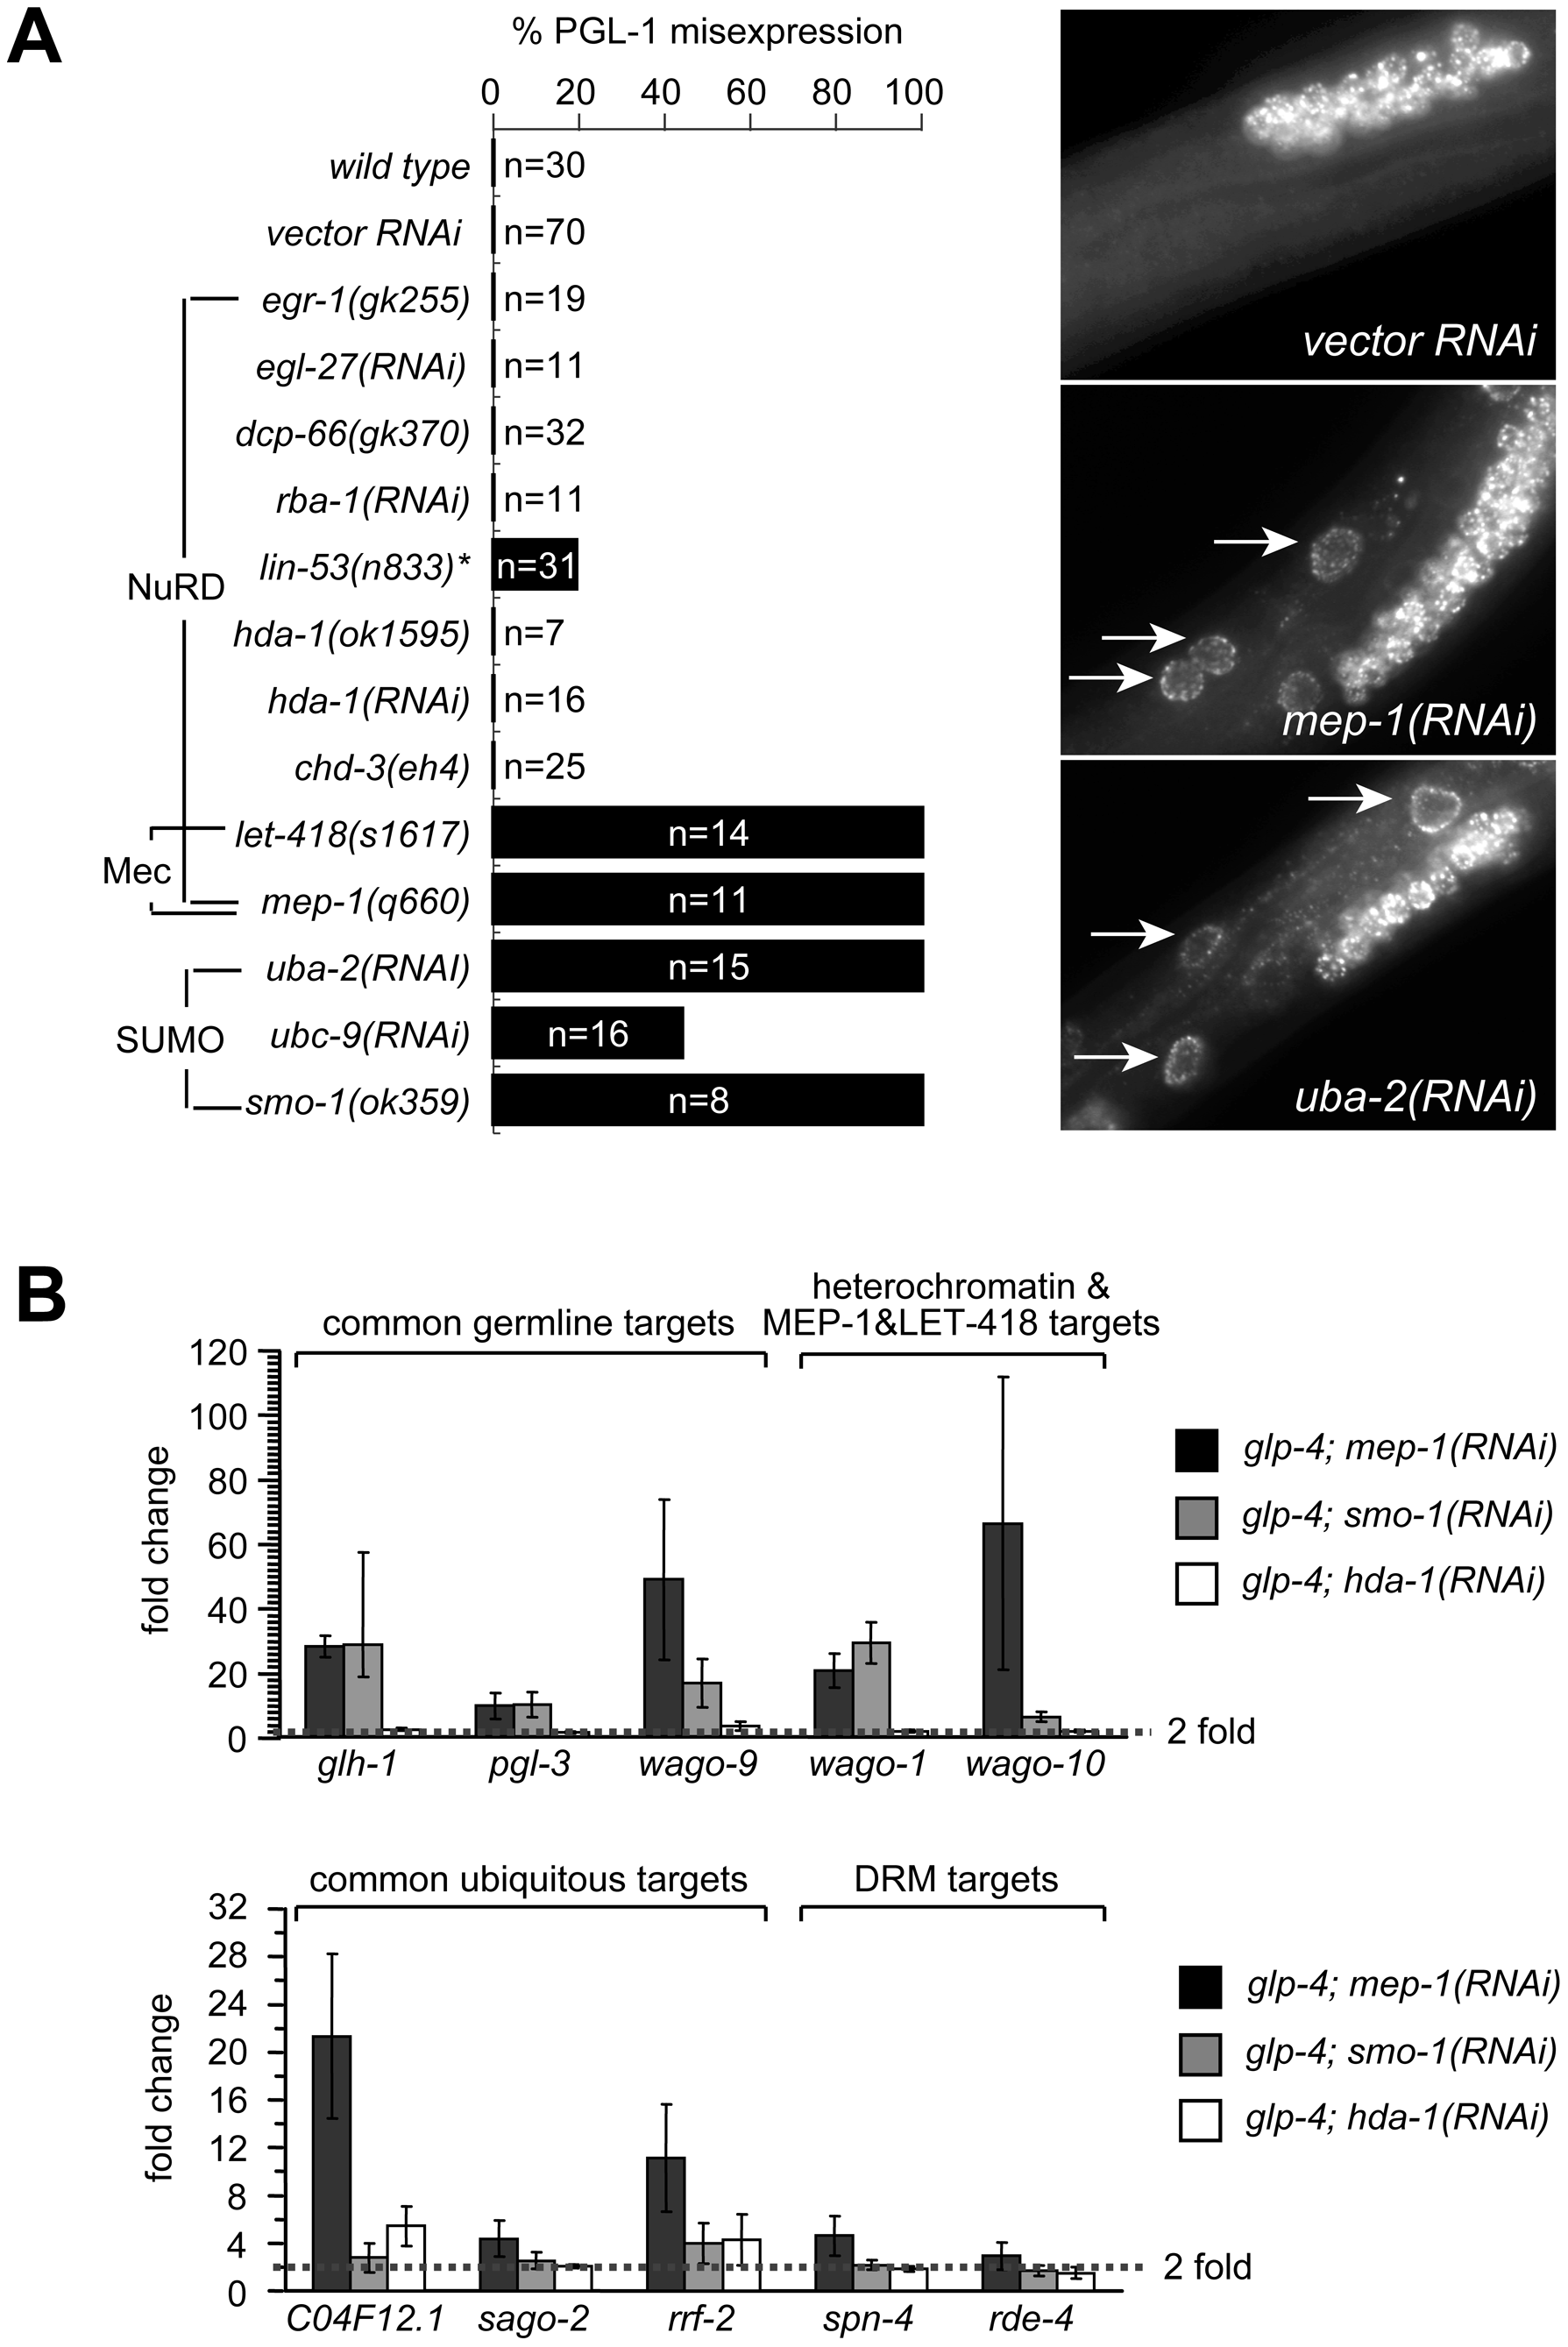 MEP-1 and LET-418 function as the Mec complex to prevent somatic germline gene expression by mediating the repressive effect of sumoylation.